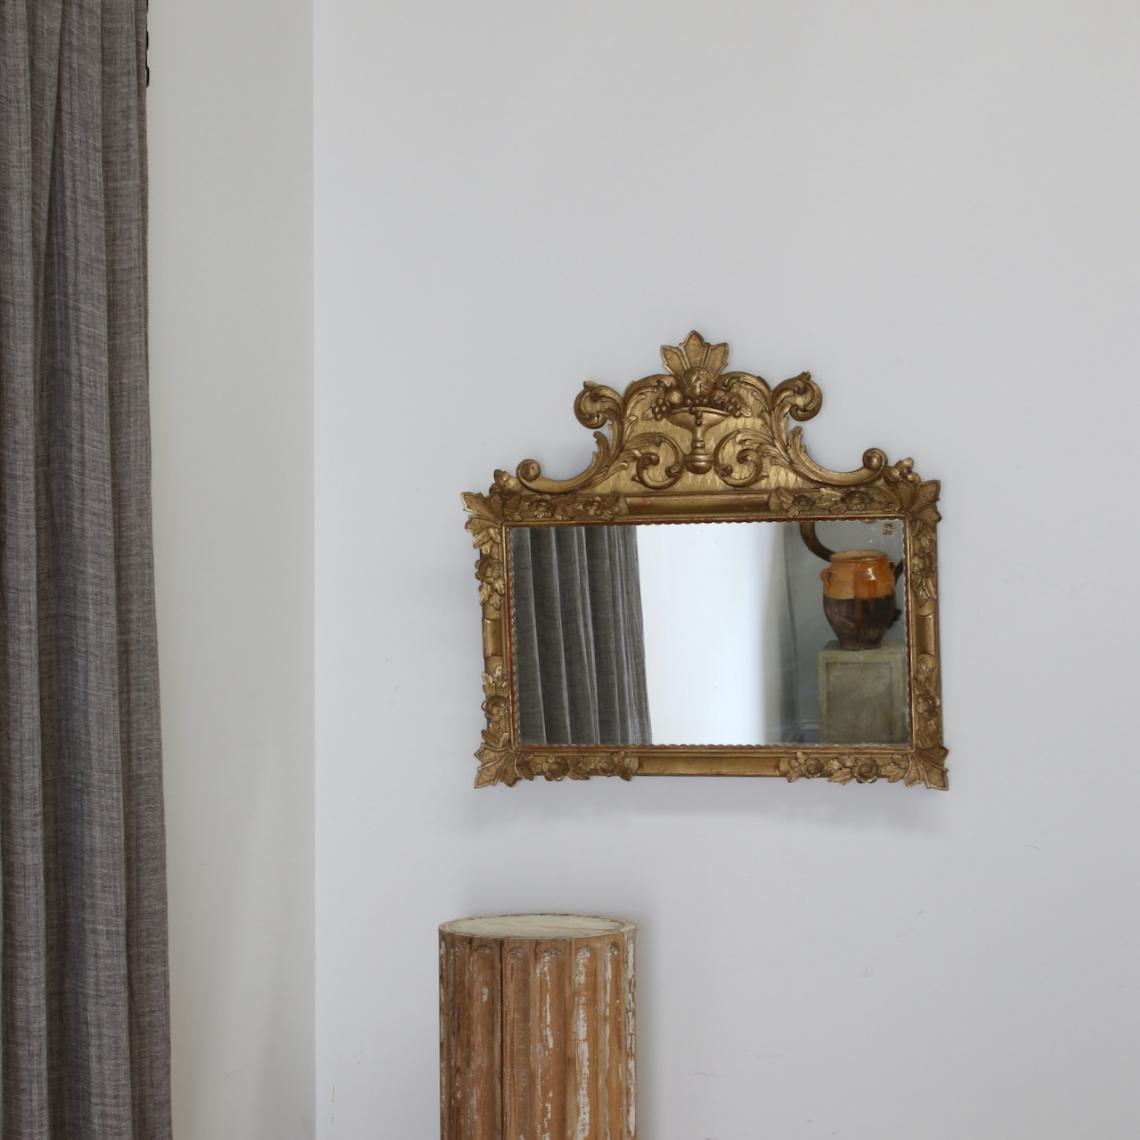 119-20 - Small Landscape Mirror With Crest